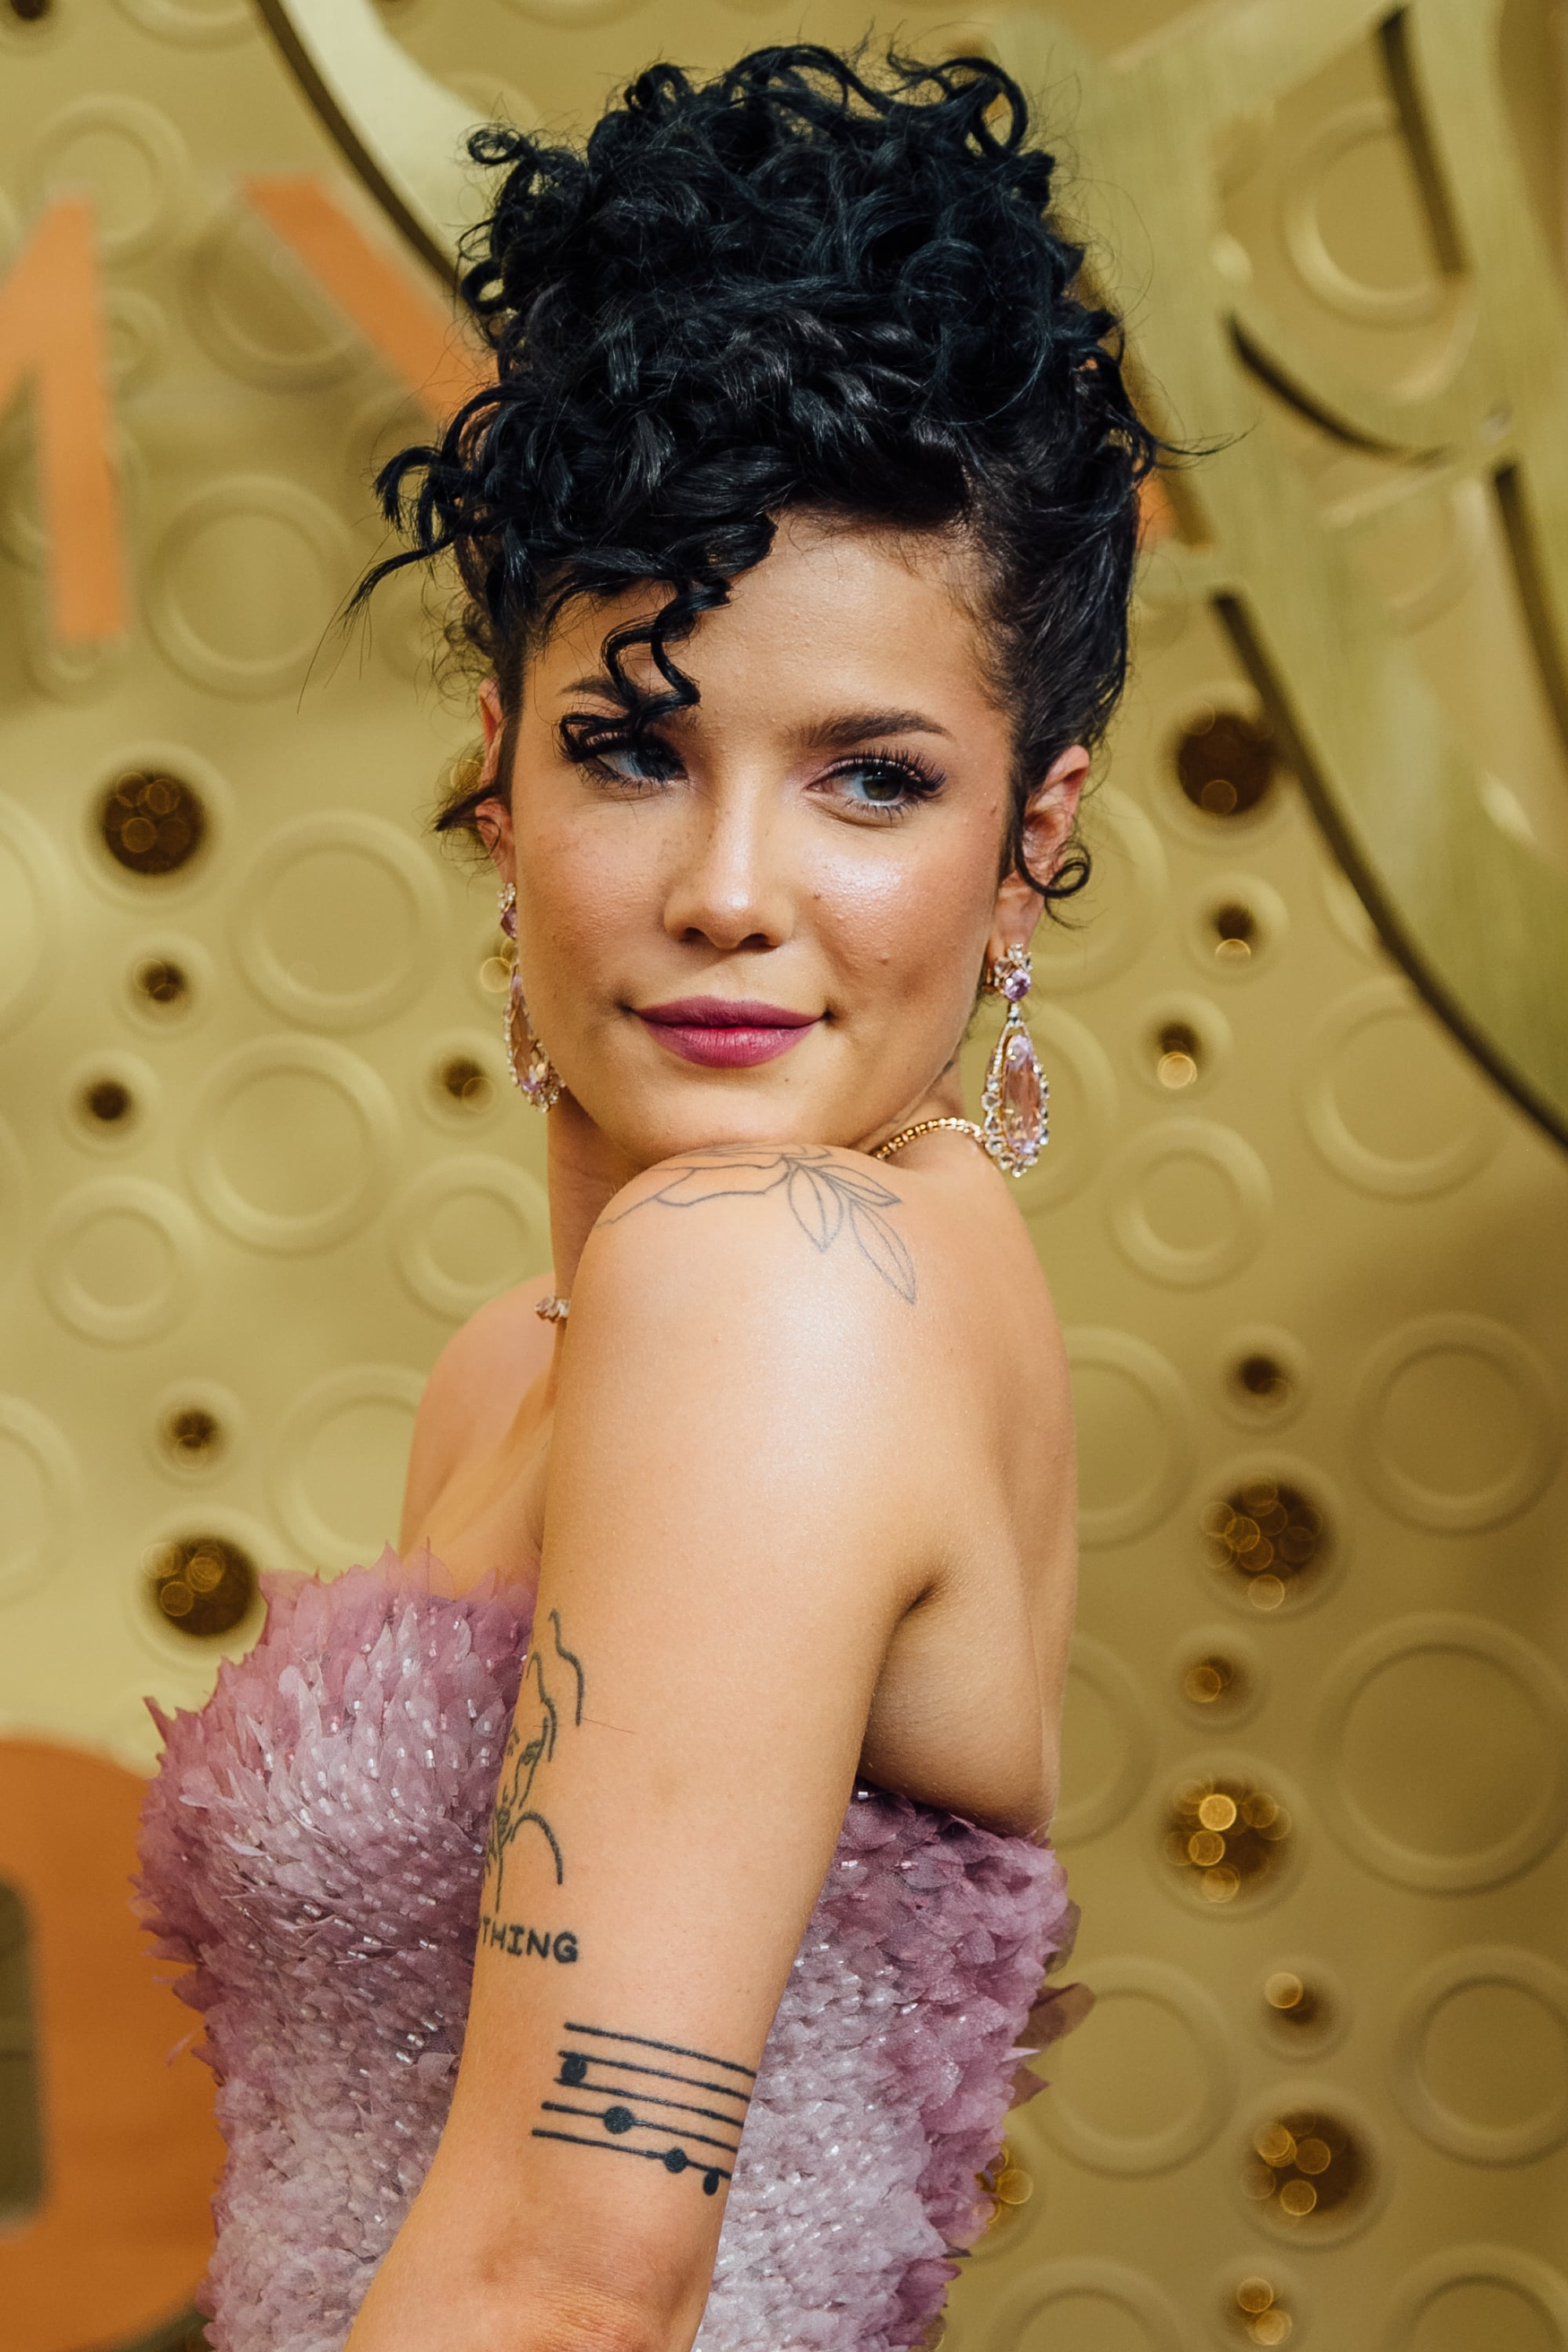 Halsey S Black Curly Updo 15 Celebrity Hair Looks To Inspire Your Holiday Party Hairstyles Popsugar Beauty Photo 10